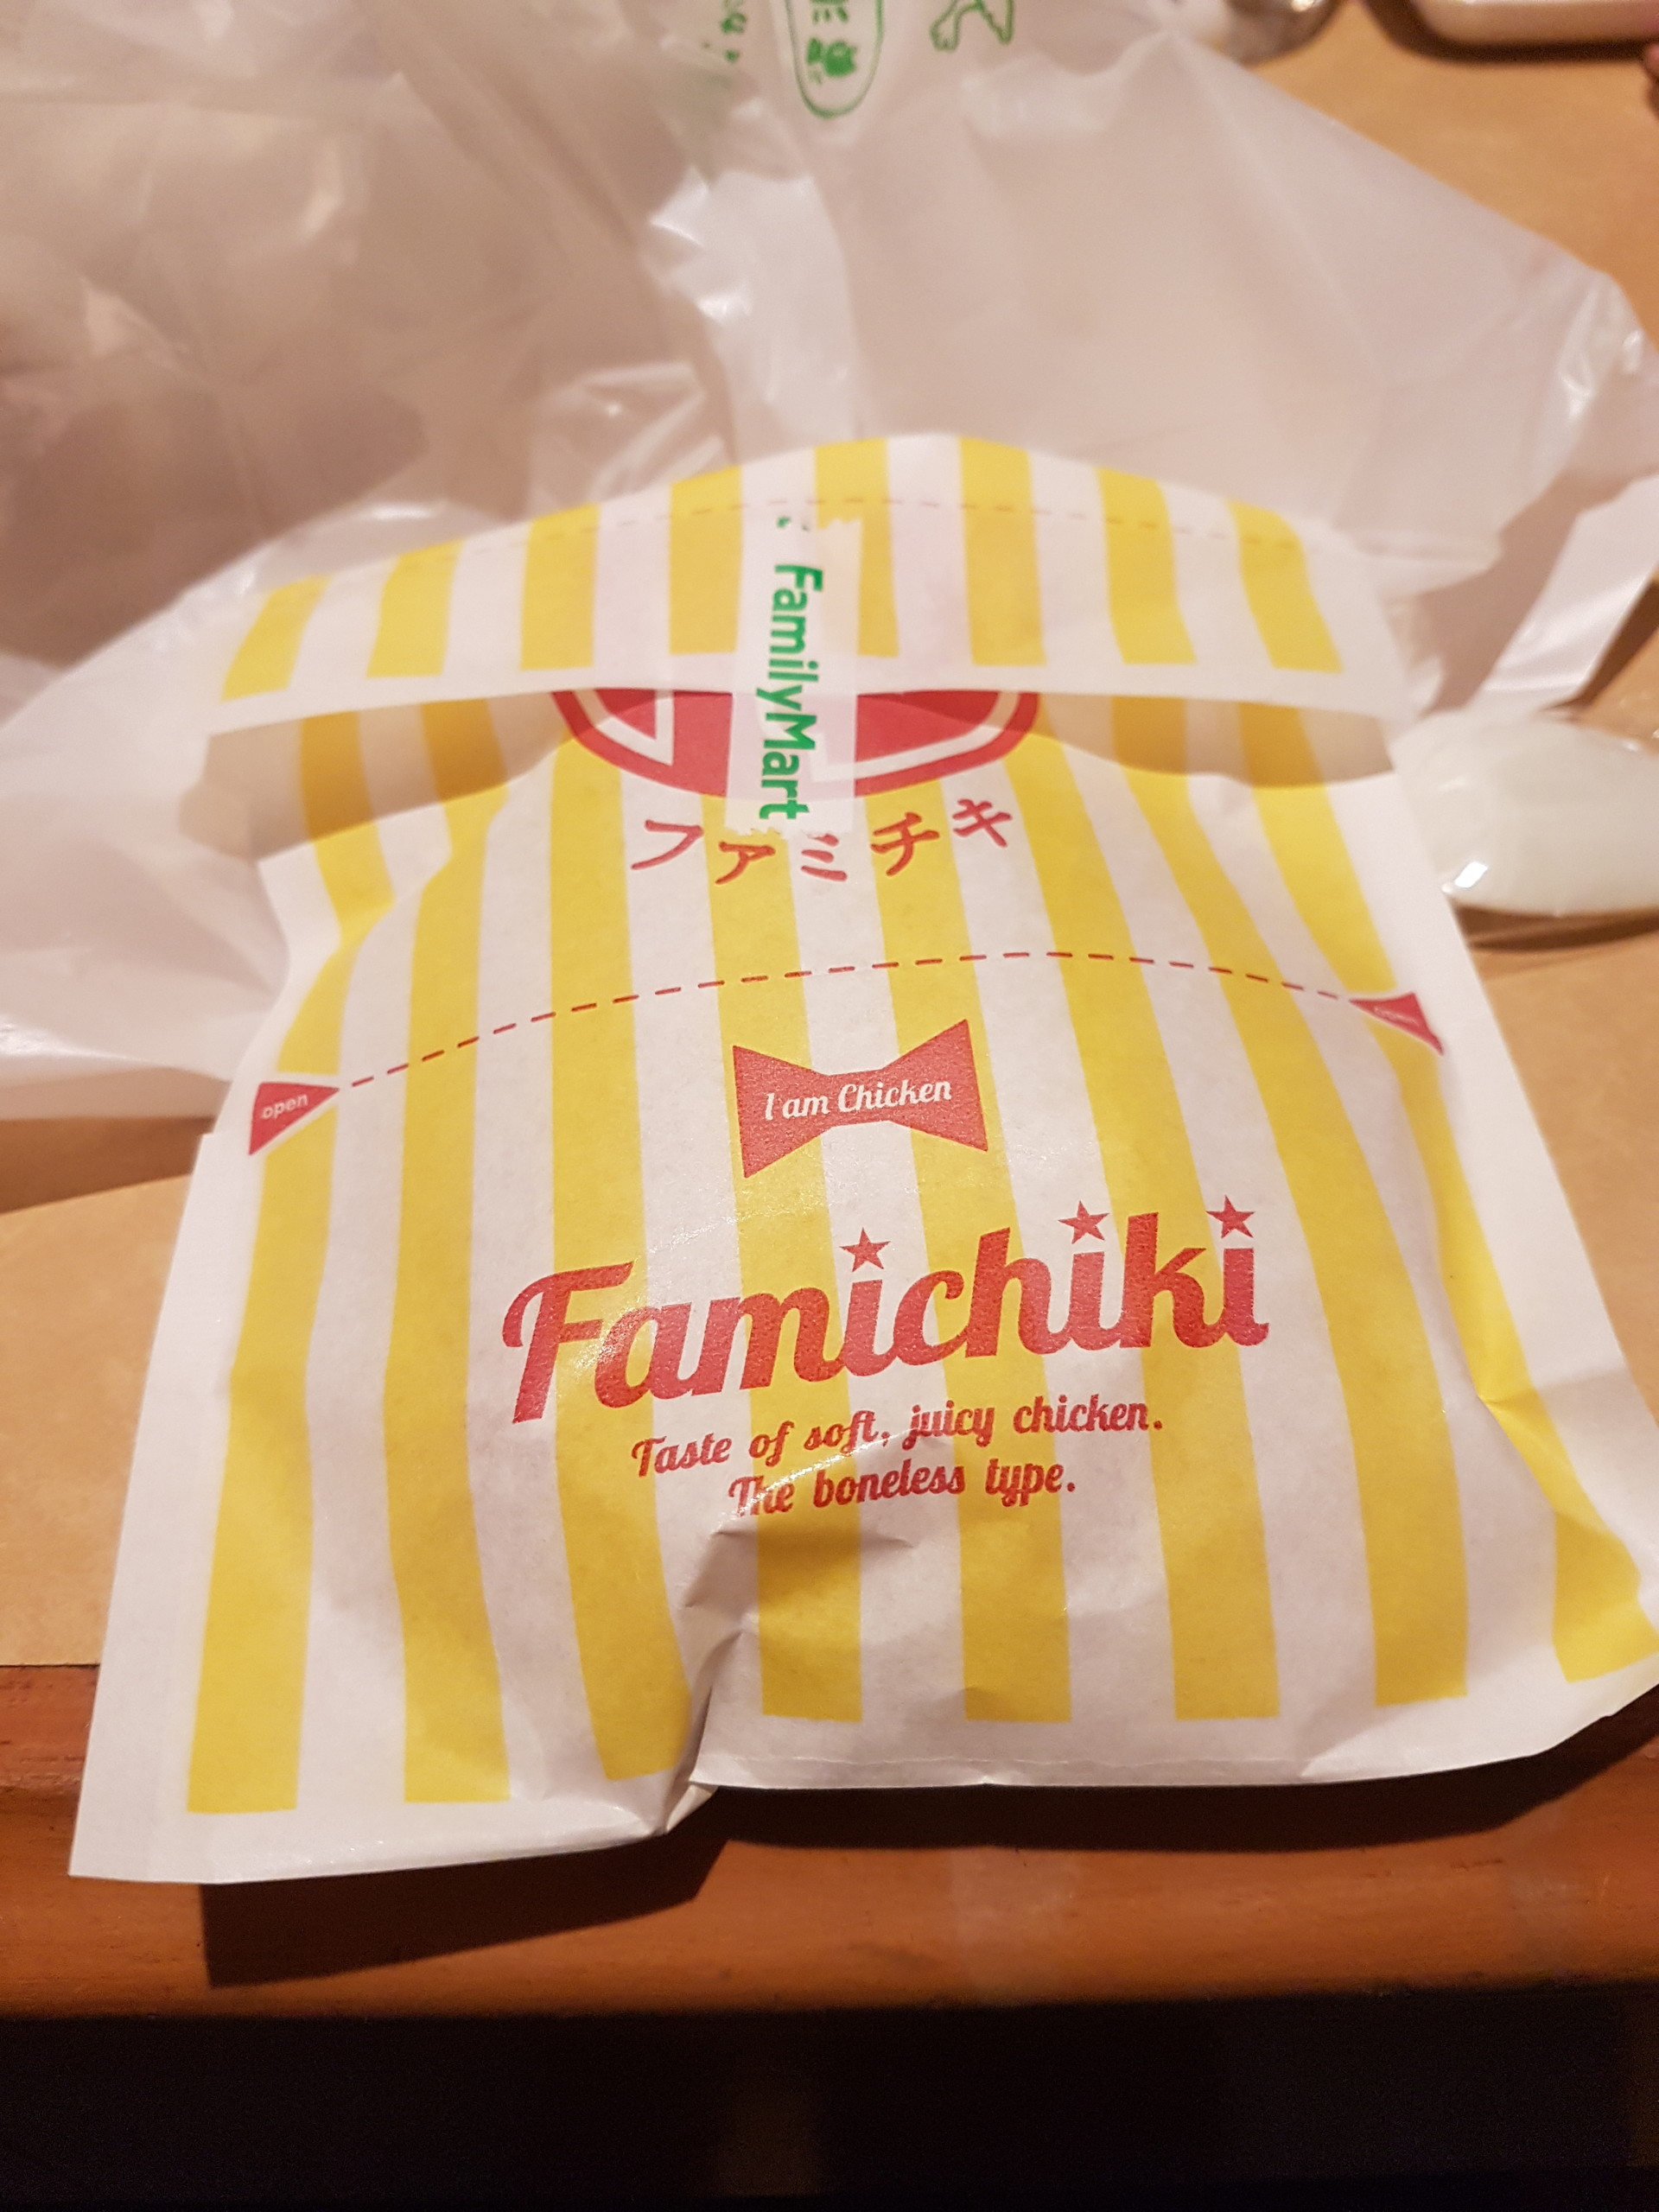 famichiki-chicken-food-review-0b6eebe2fd